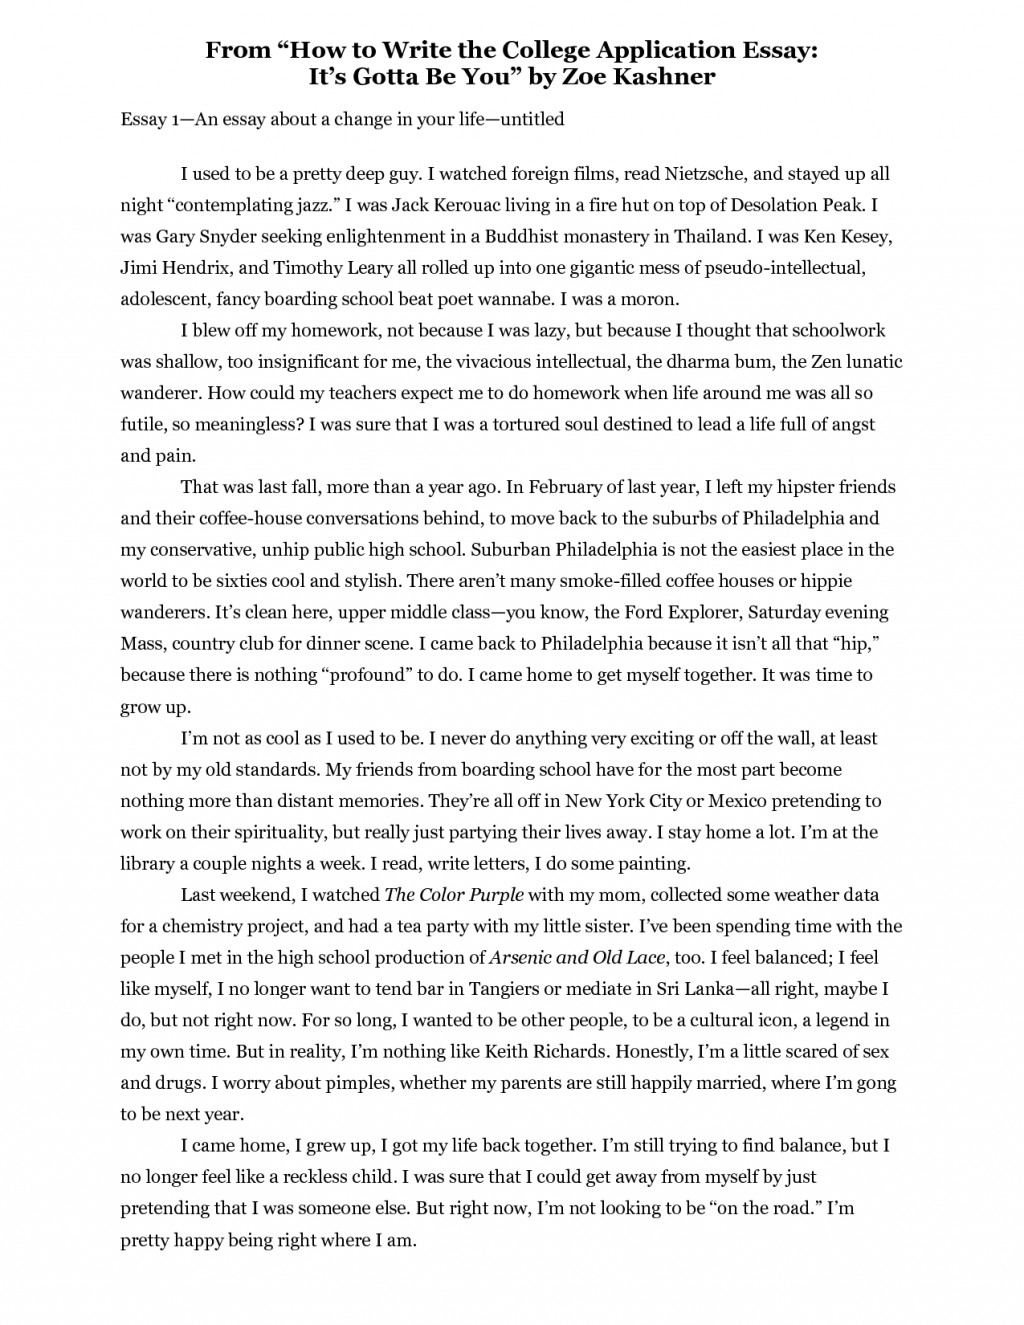 002 Oyt5kbffja Essay About Breathtaking Immigration Causes Friendship With Figure Of Speech Technology And Communication Large